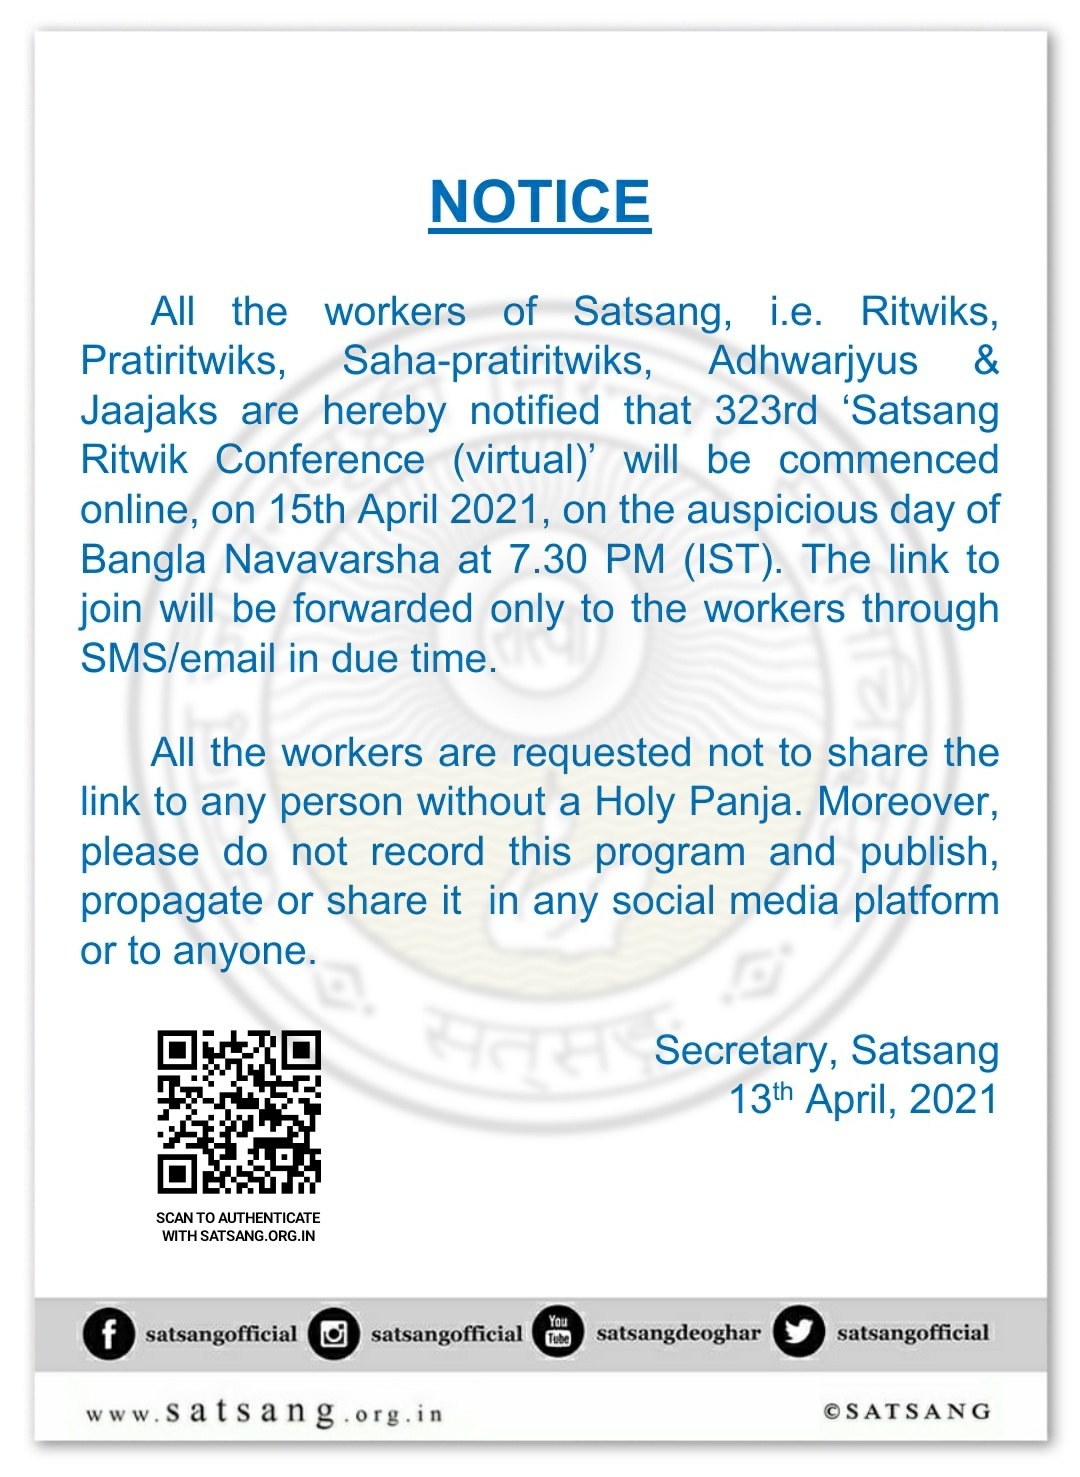 NOTICE_13042021_ENG